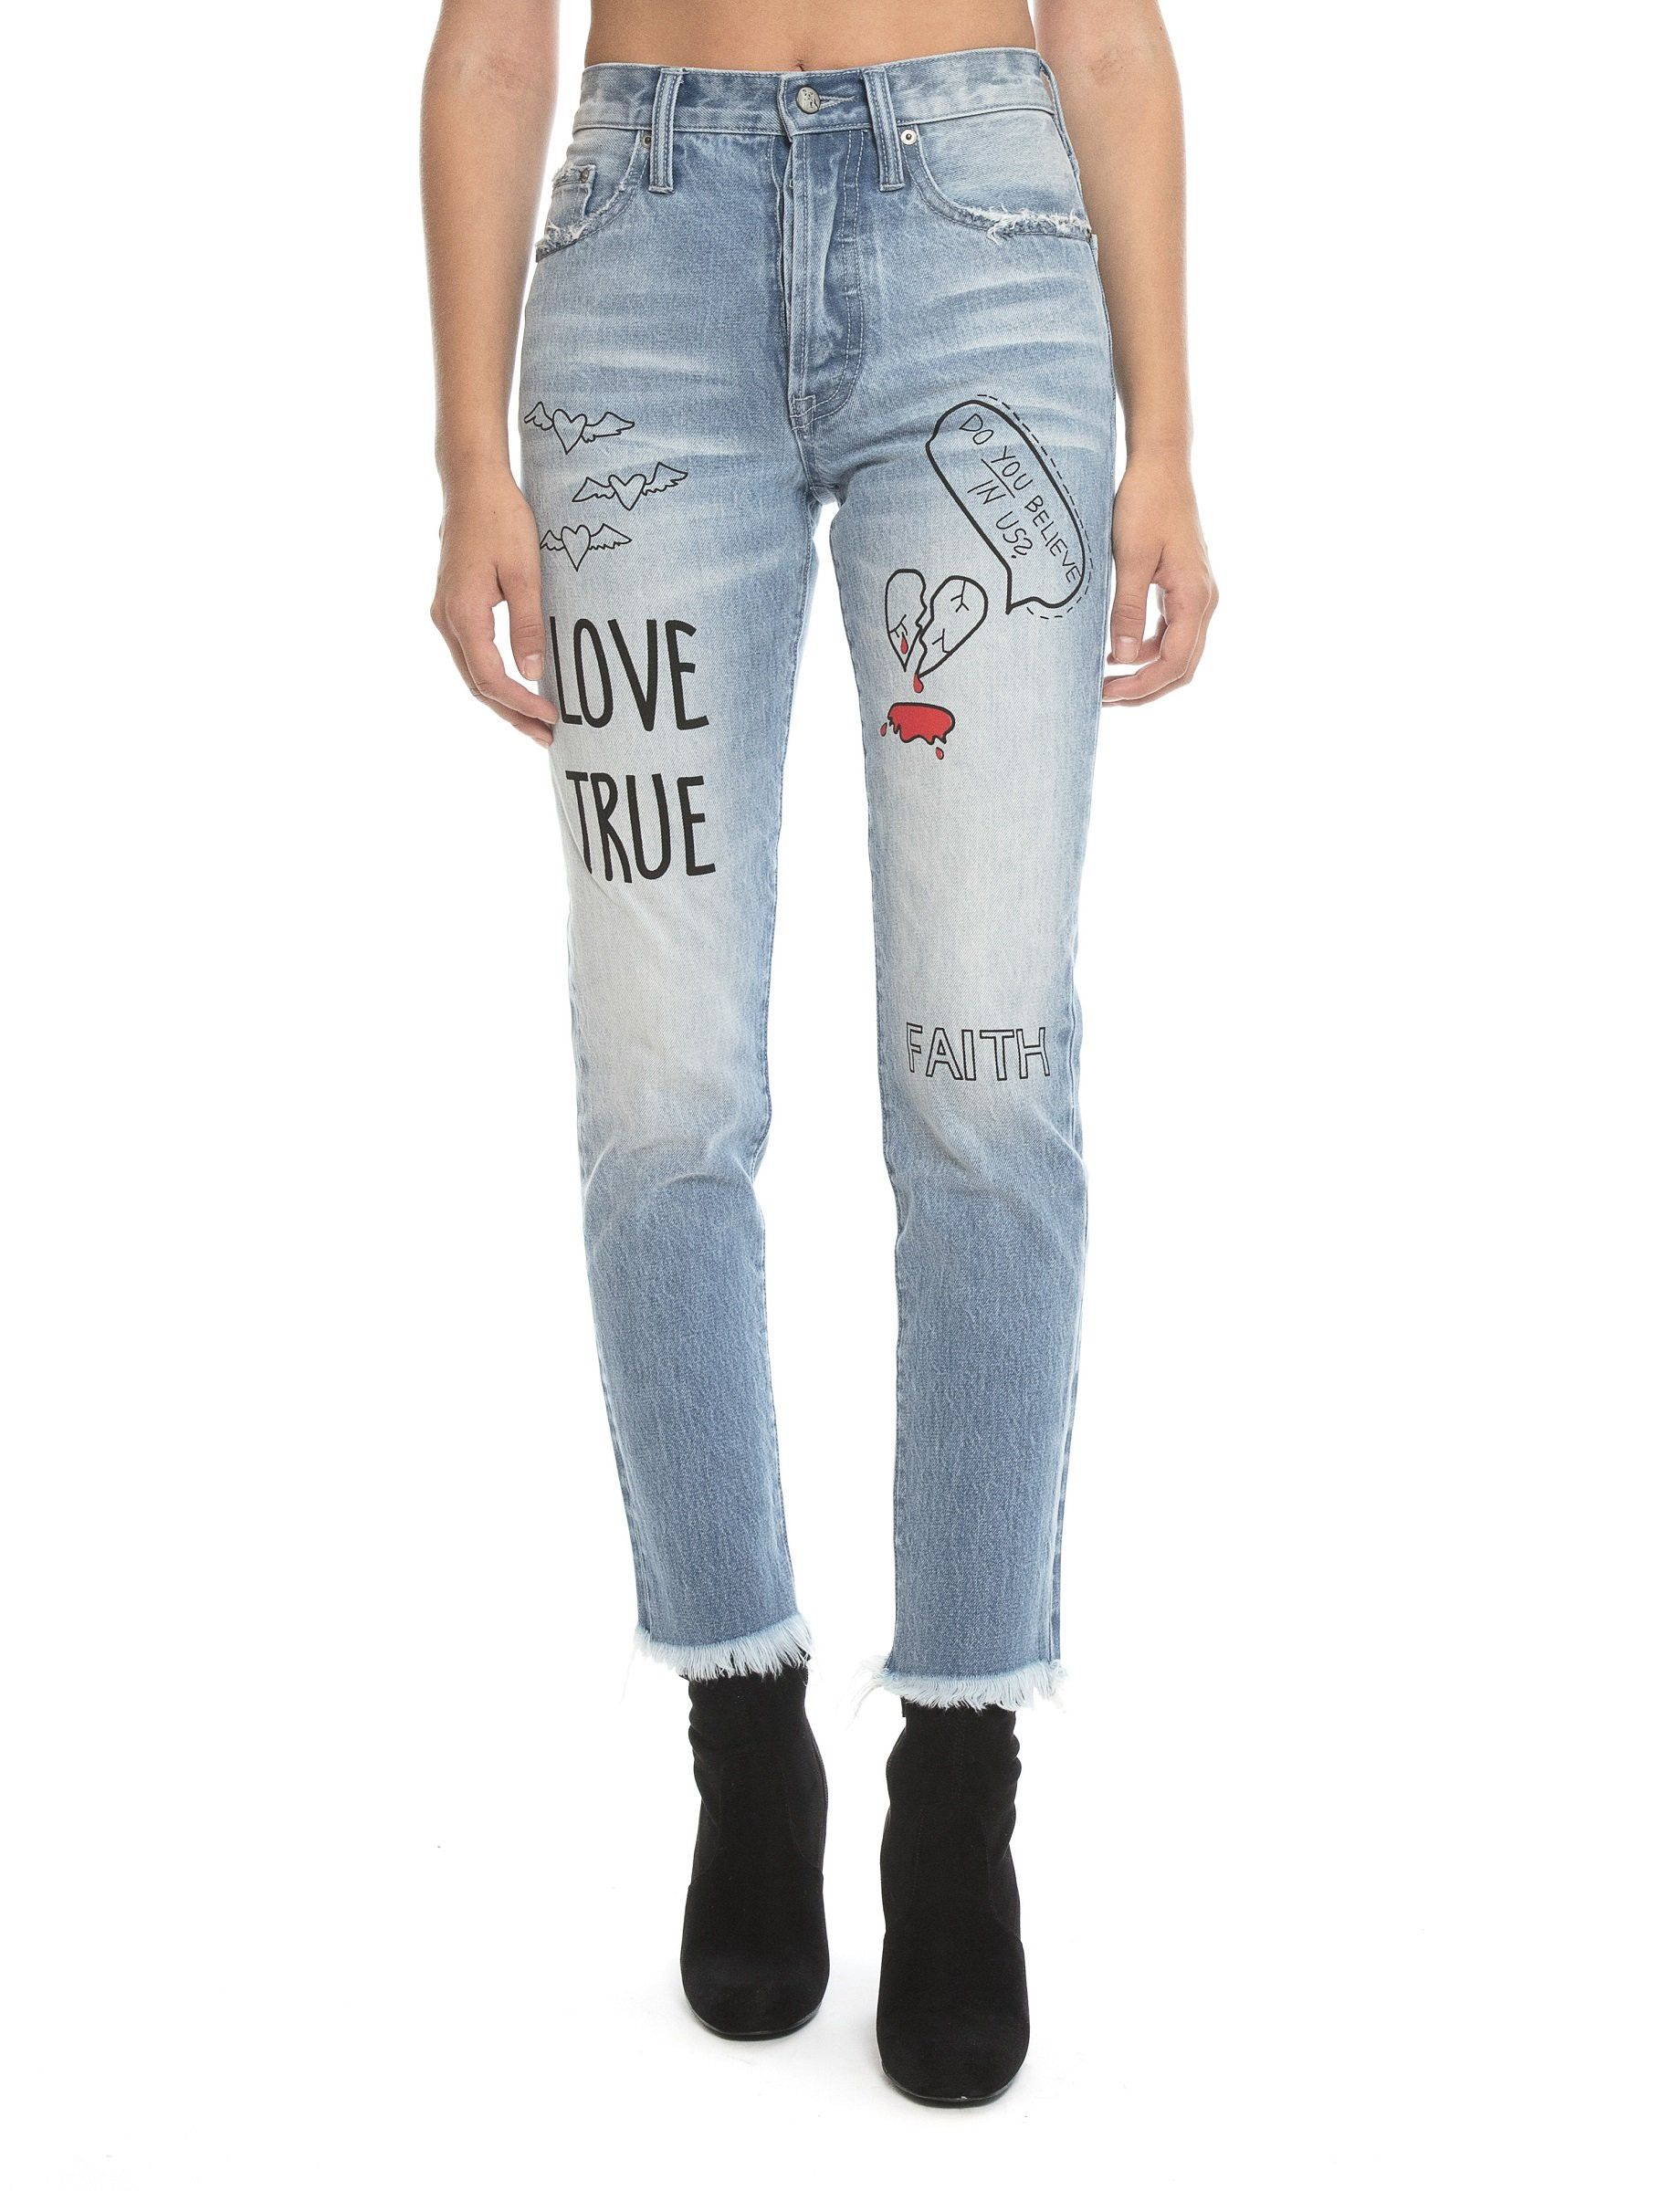 1413b0992 Prps Amx - Love Note 24 | DIY Makeovers | Jeans, Denim jeans, Denim ...